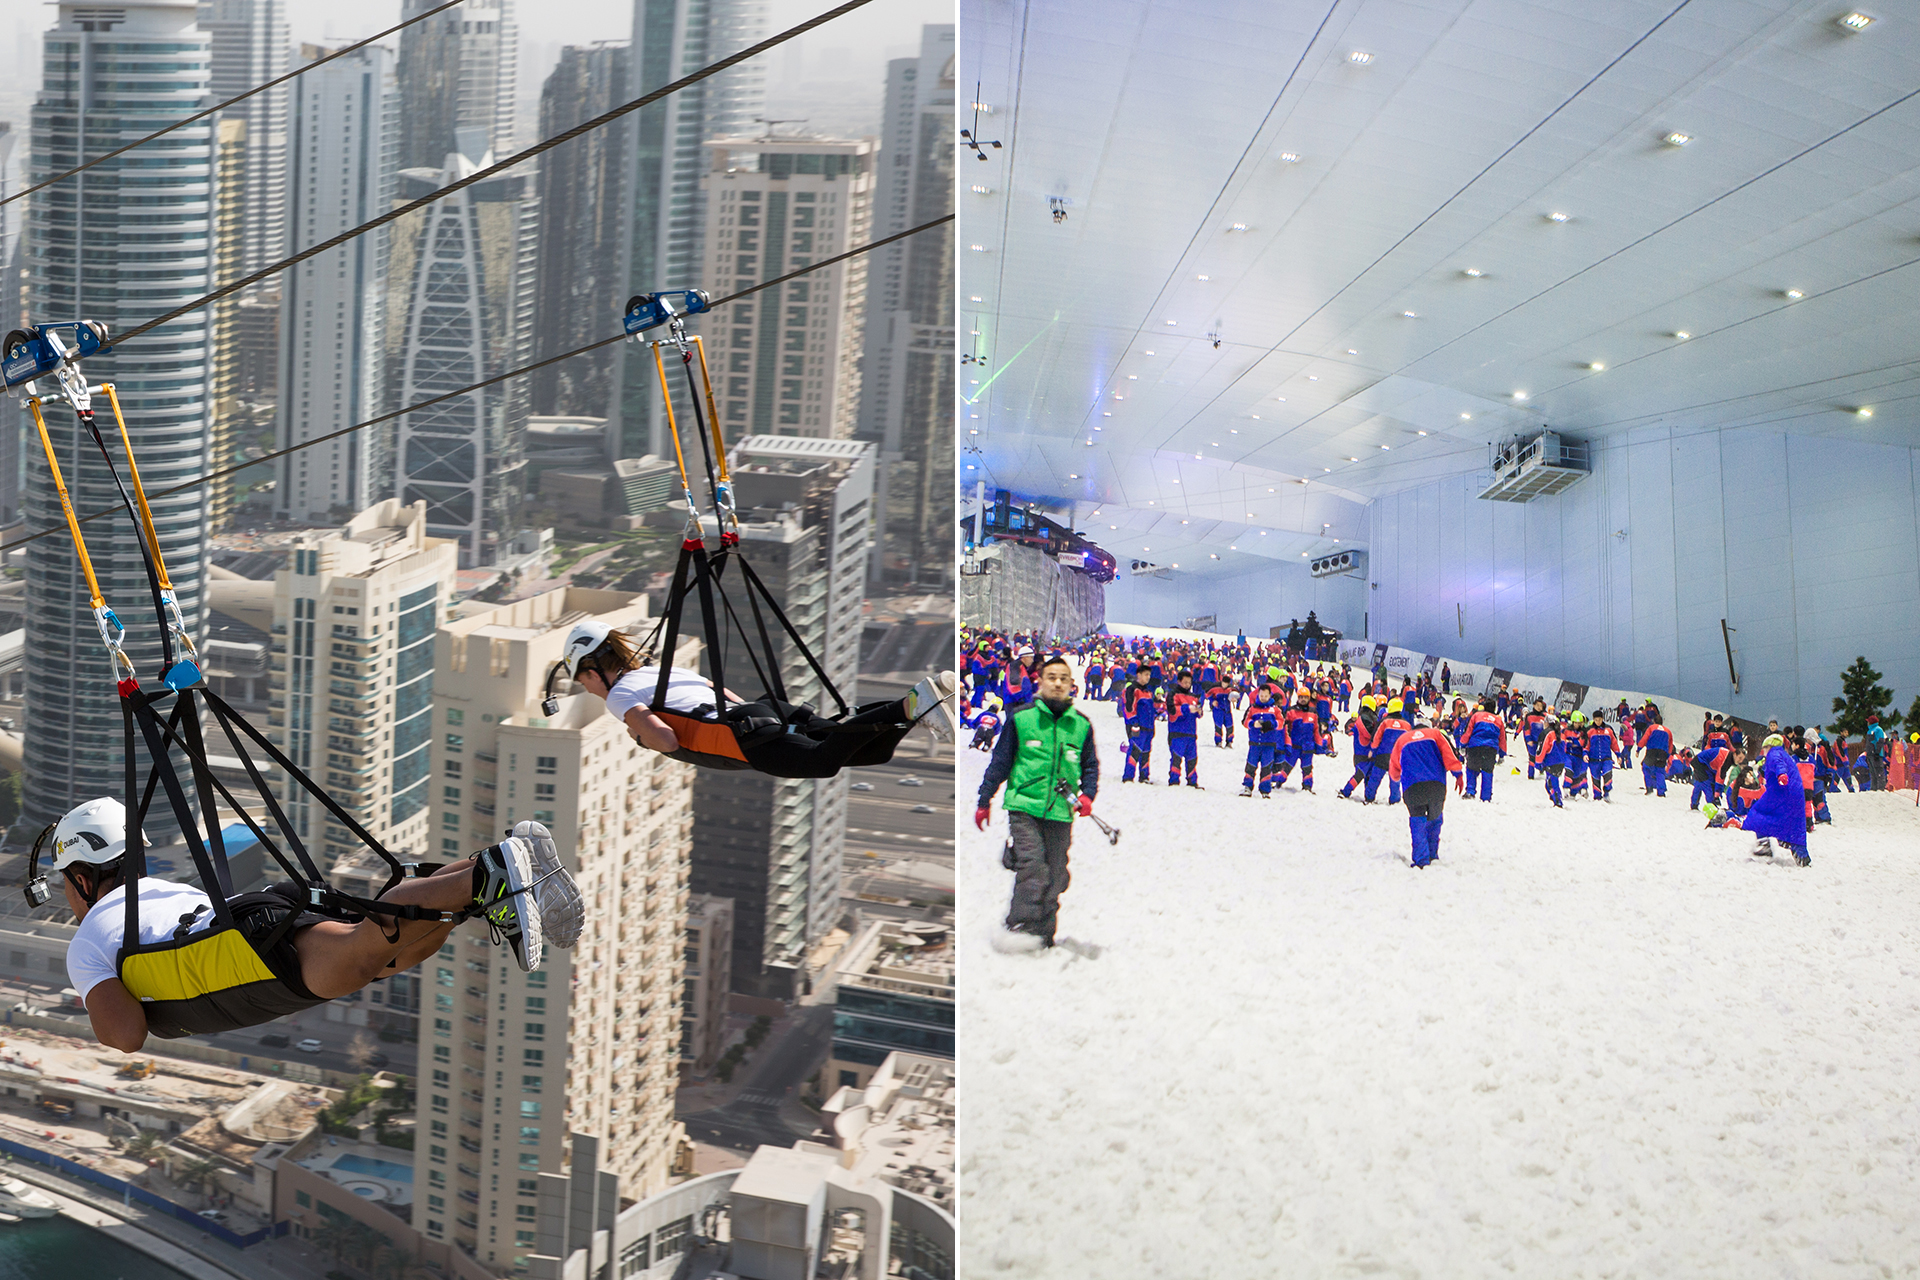 The Craziest Things You Can Do In Dubai Malls From Ziplining To